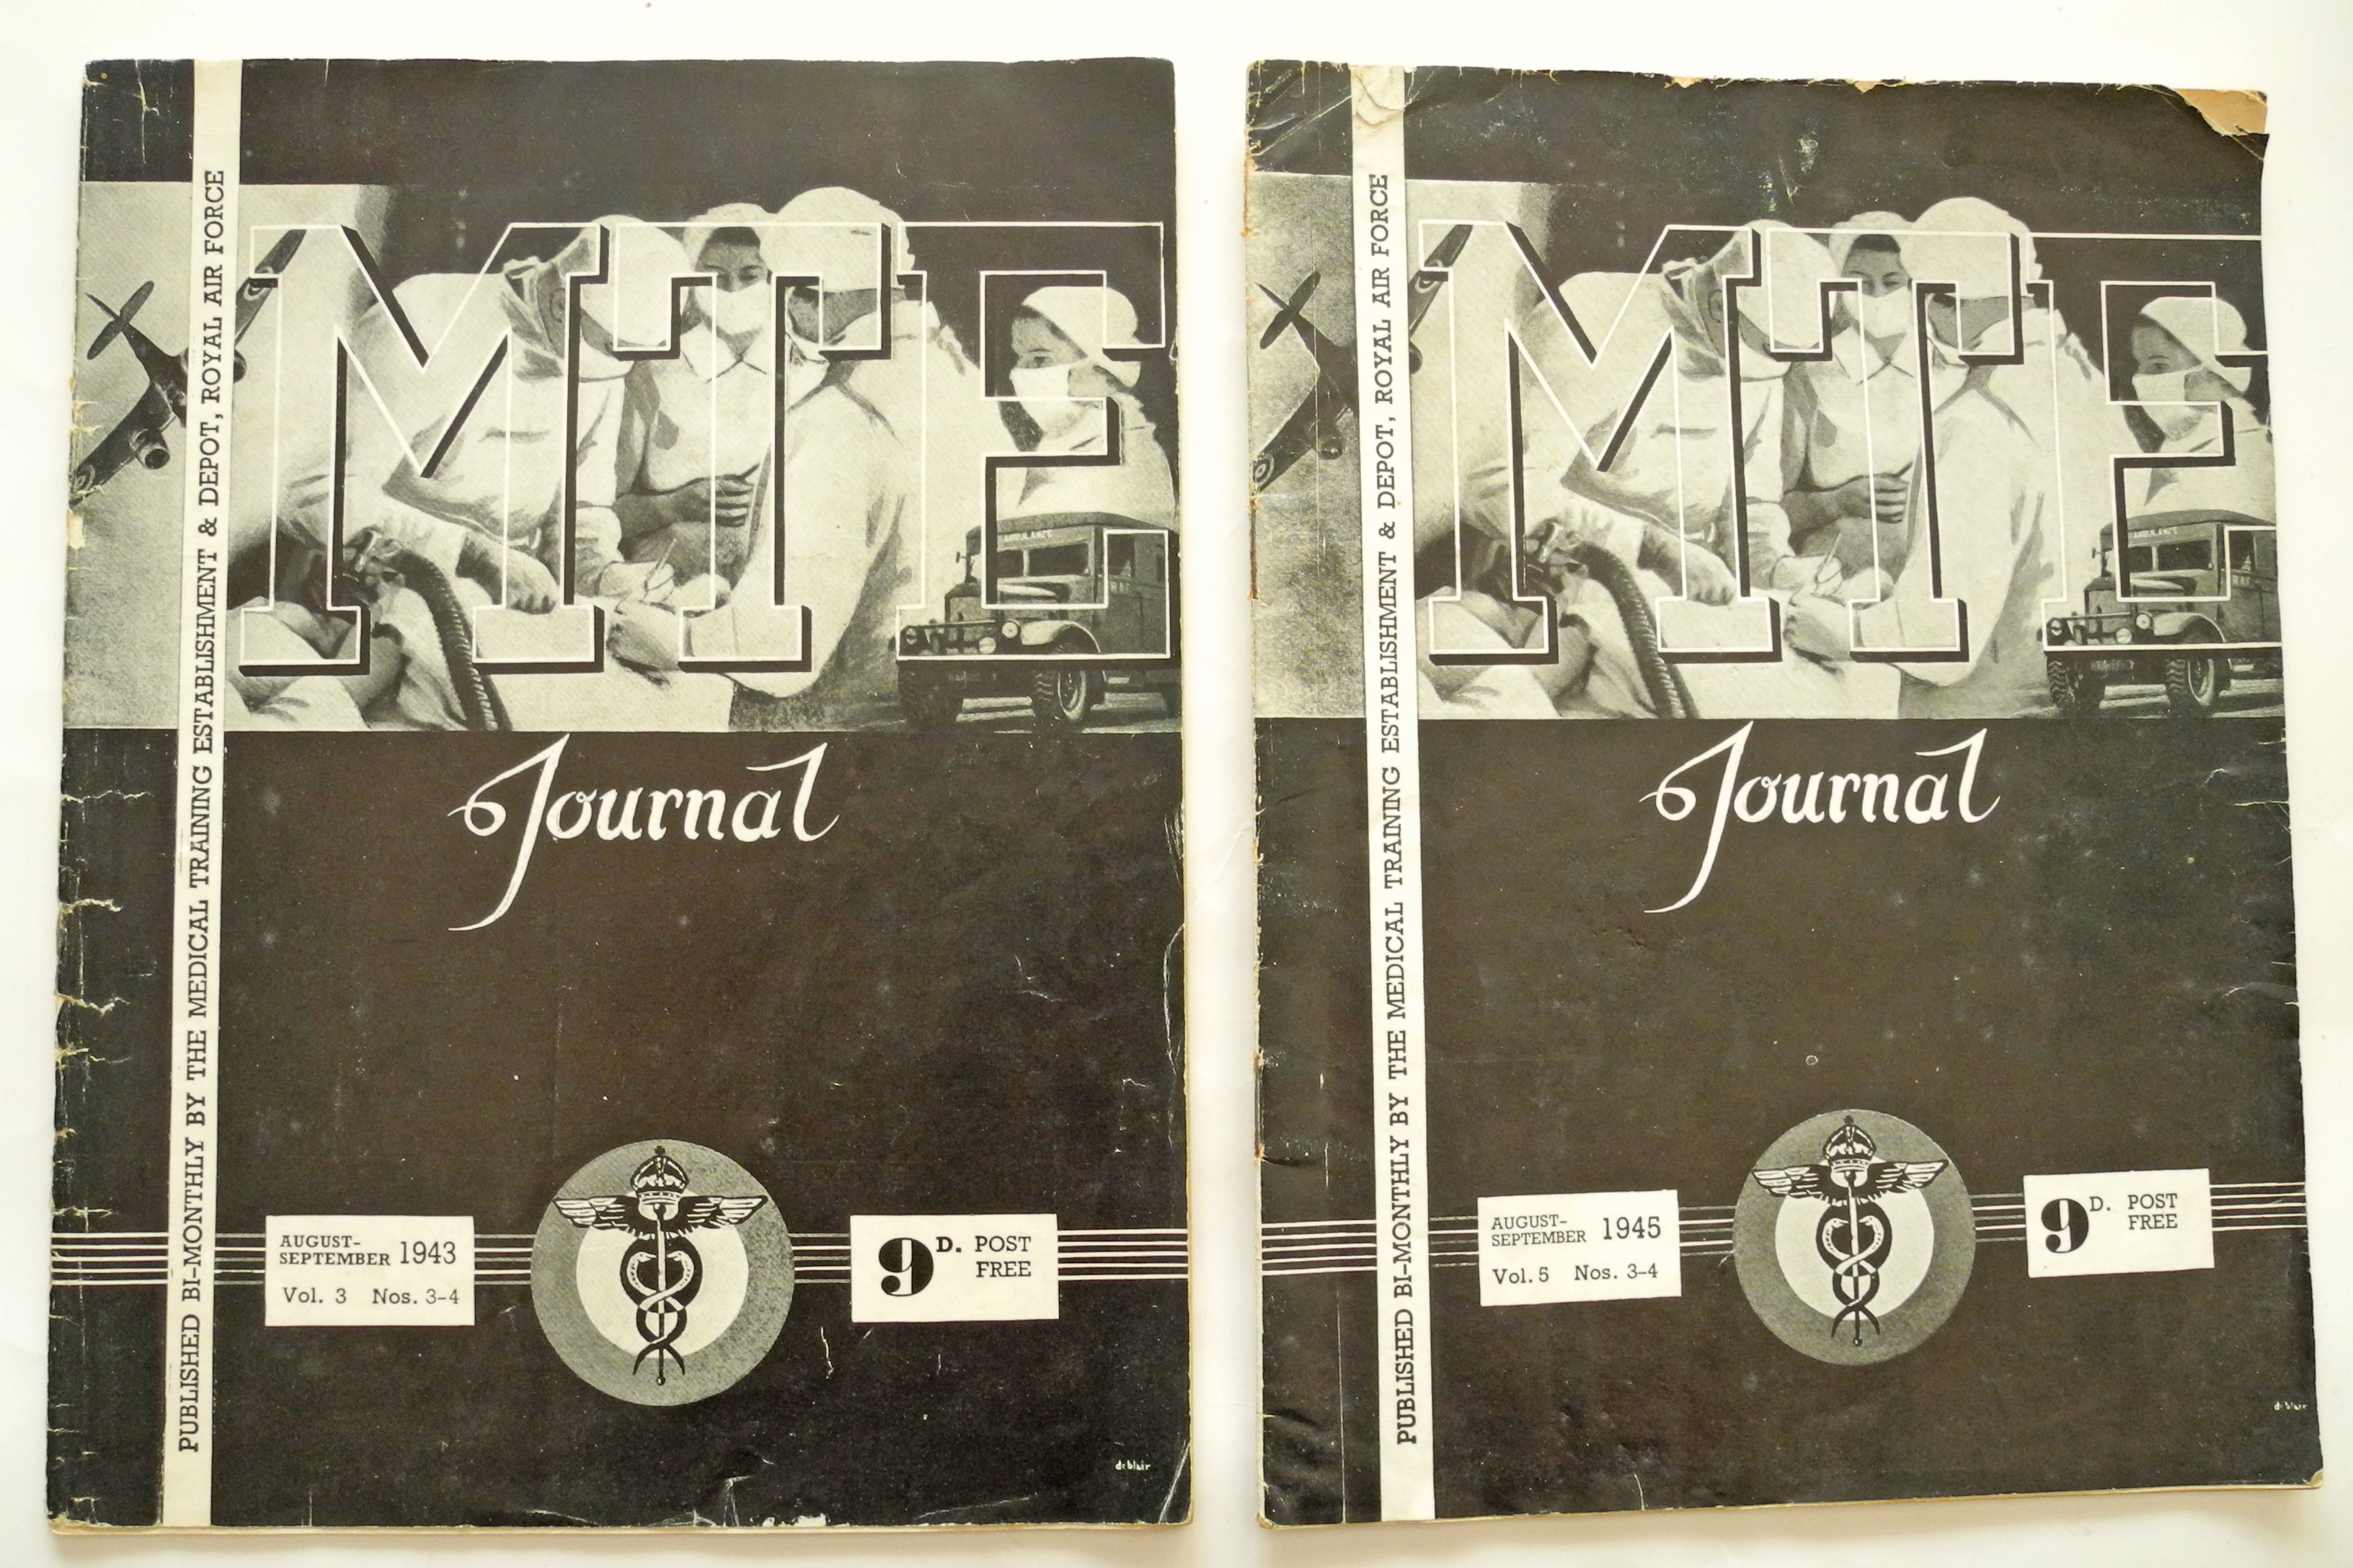 RAF wartime medical journals